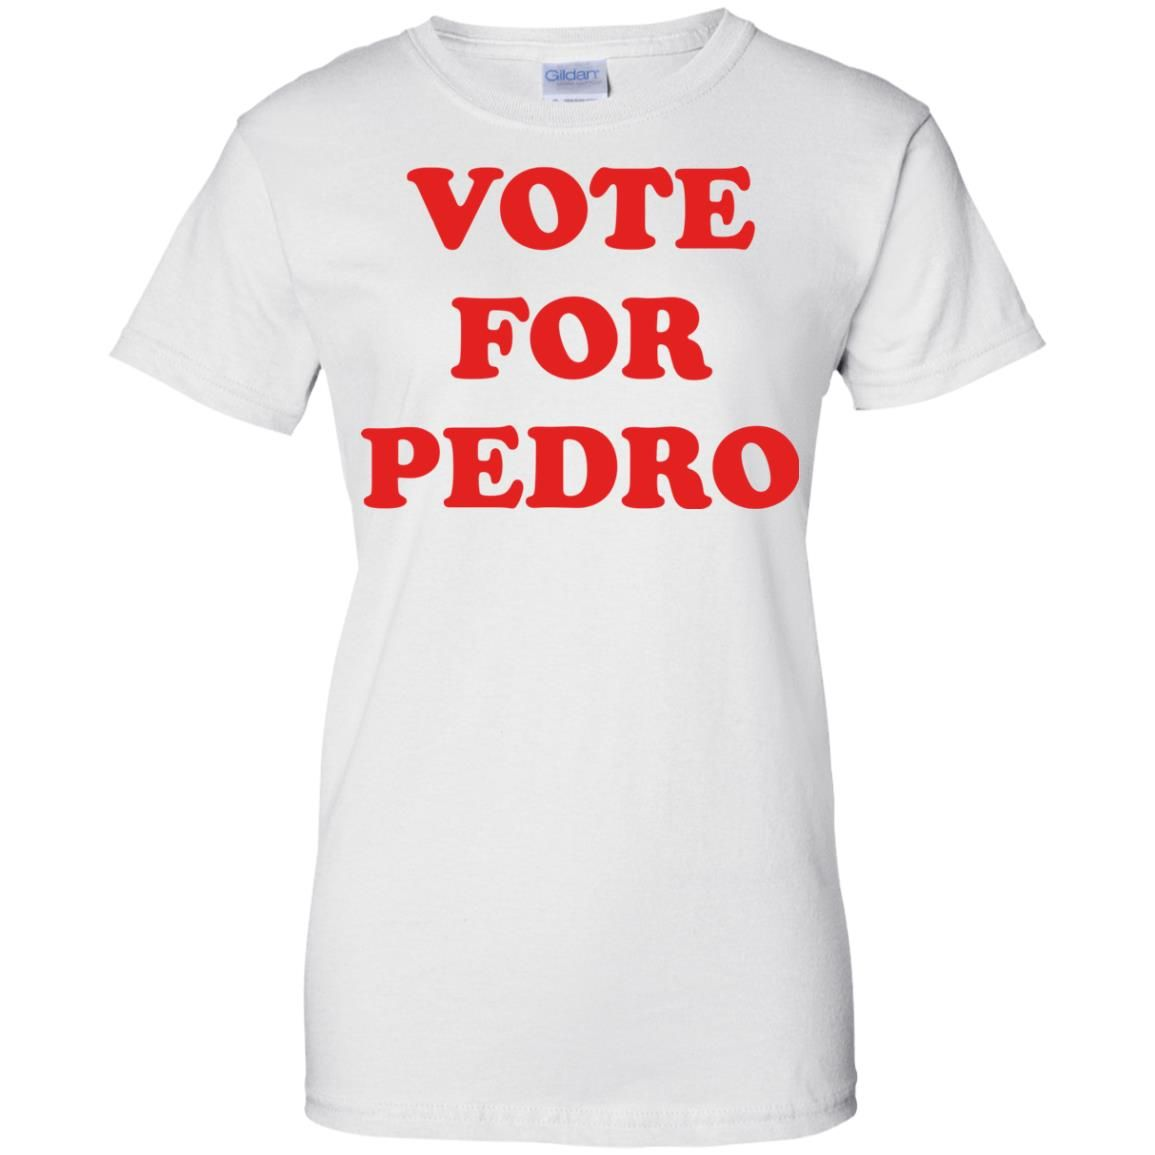 image 1469 - Napoleon Dynamite Vote for Pedro shirt